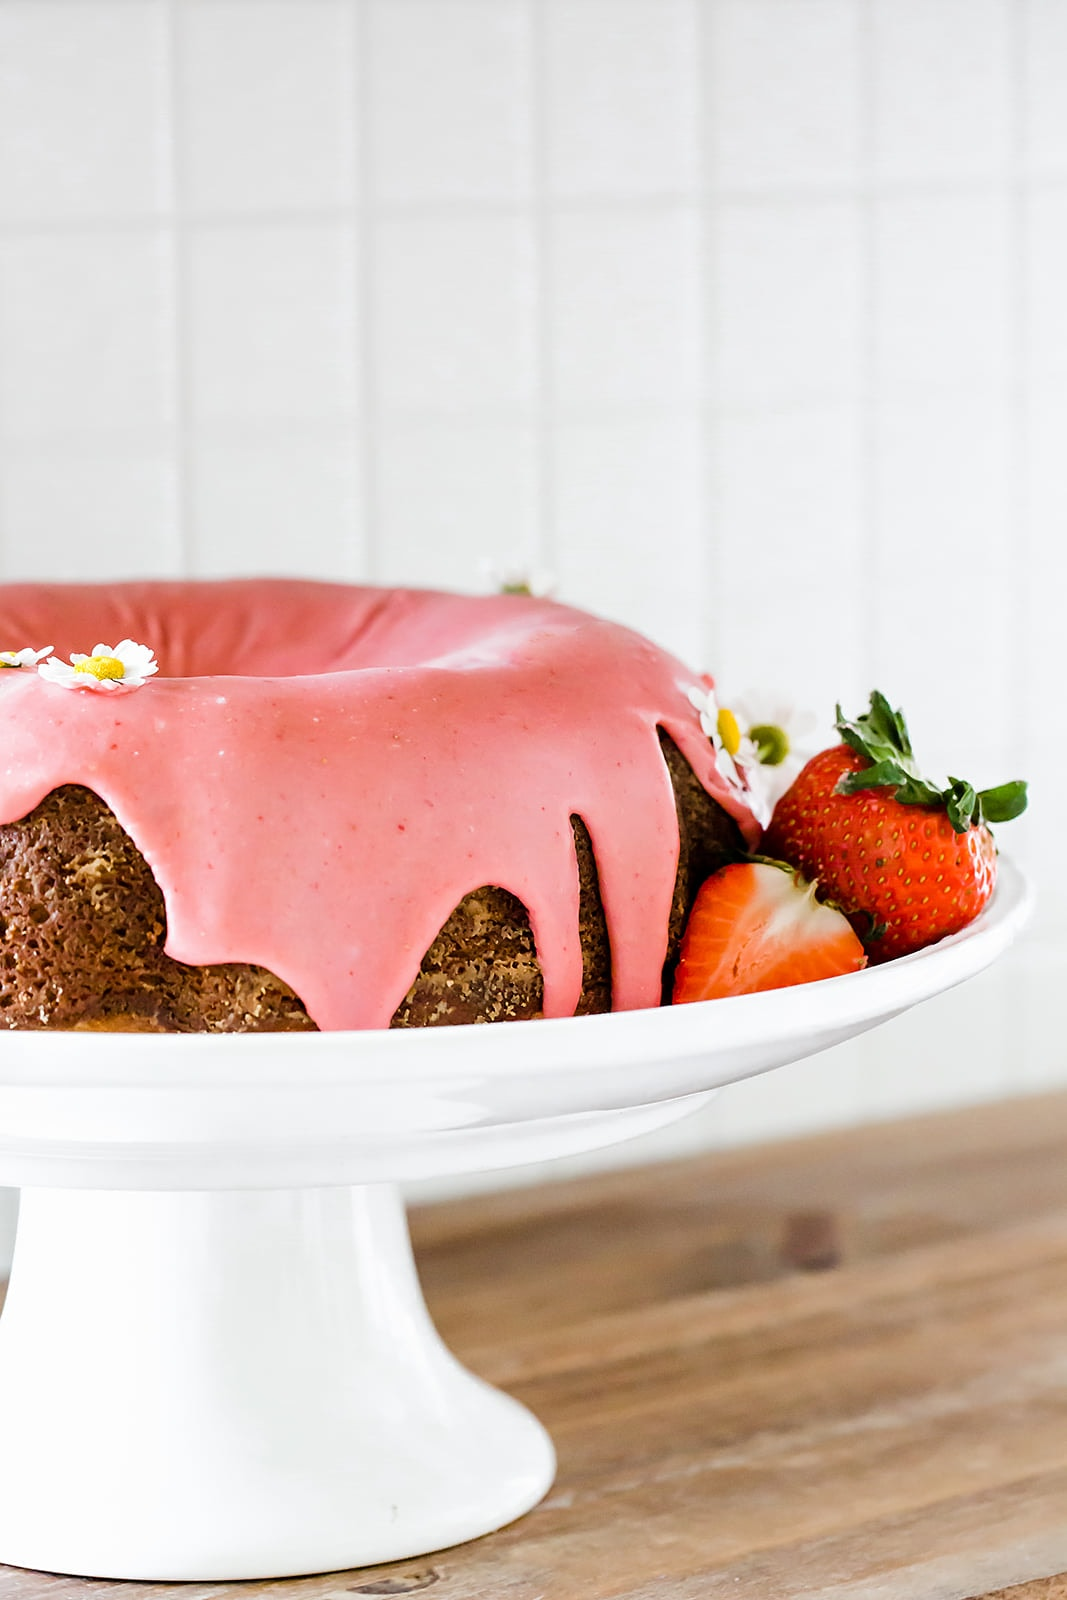 This light, fluffy, and flavorful Strawberry Bundt Cake is made with a fresh strawberry puree and absolutely no artificial colors or flavors! It's the perfect easy yet crowd-pleasing spring or summer cake.